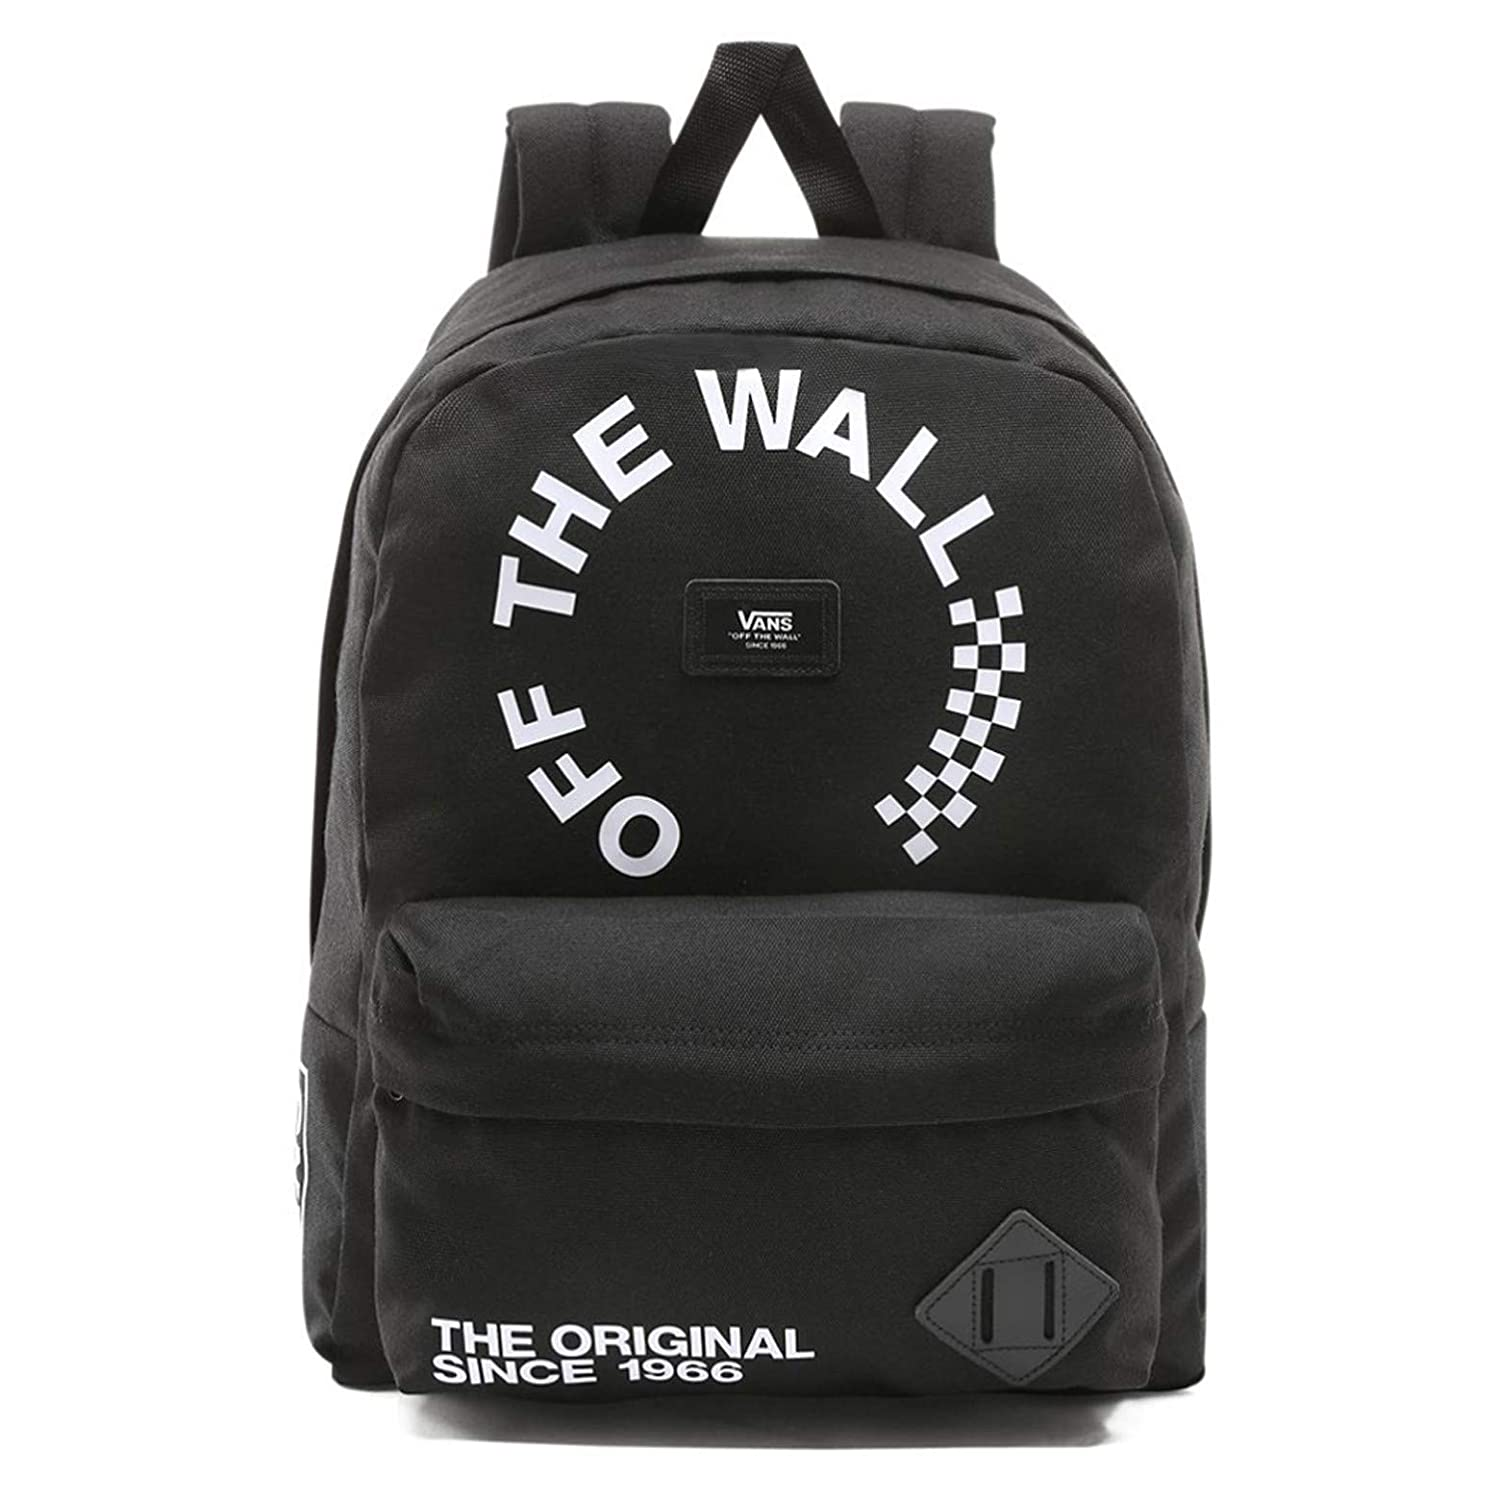 Vans MN Old Skool II Rucksack 42 cm Black/White: Amazon.de: Koffer ...